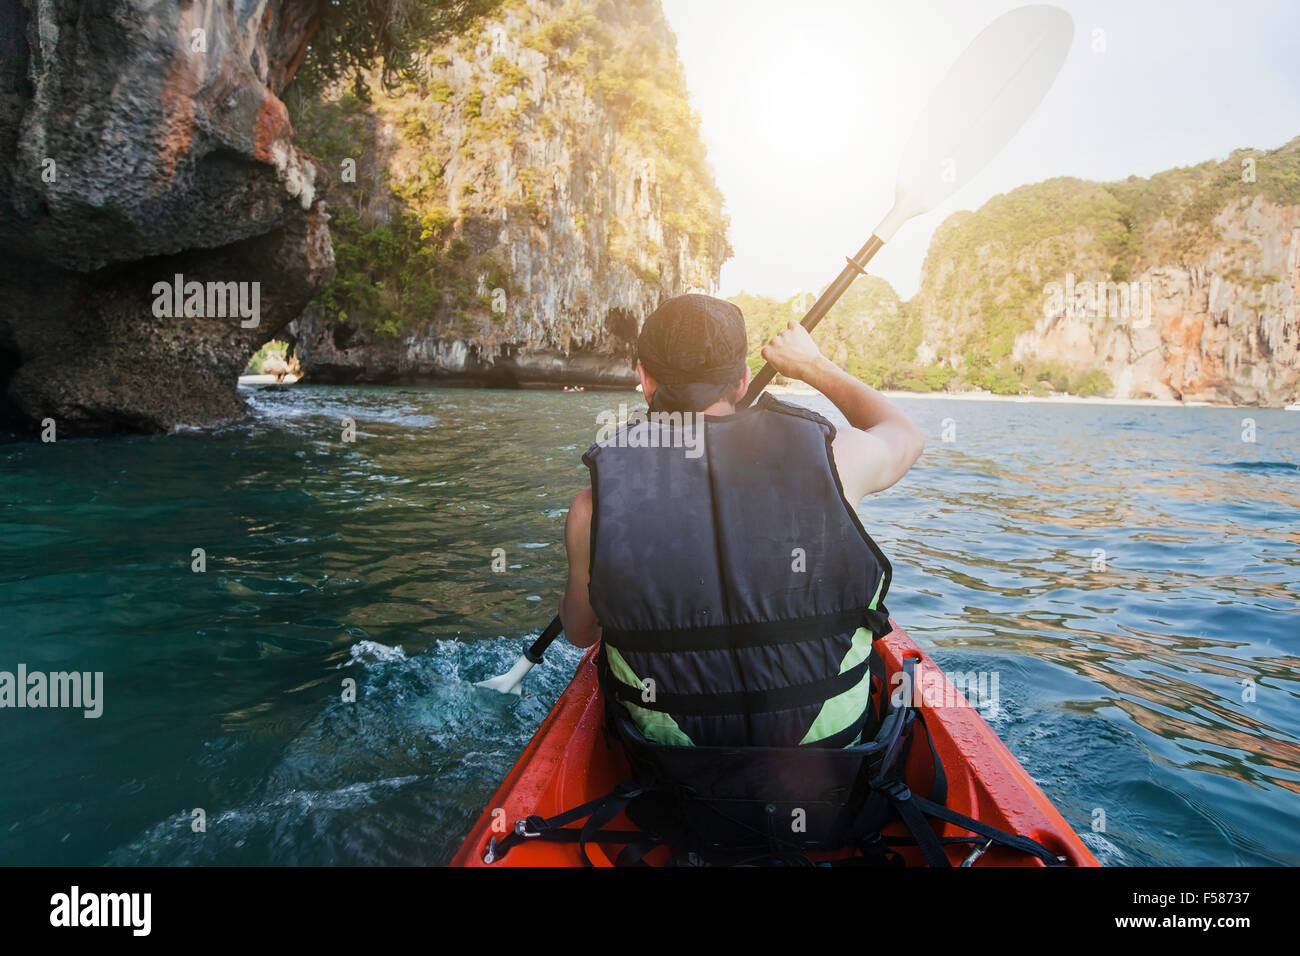 kayaking, sea adventure - Stock Image